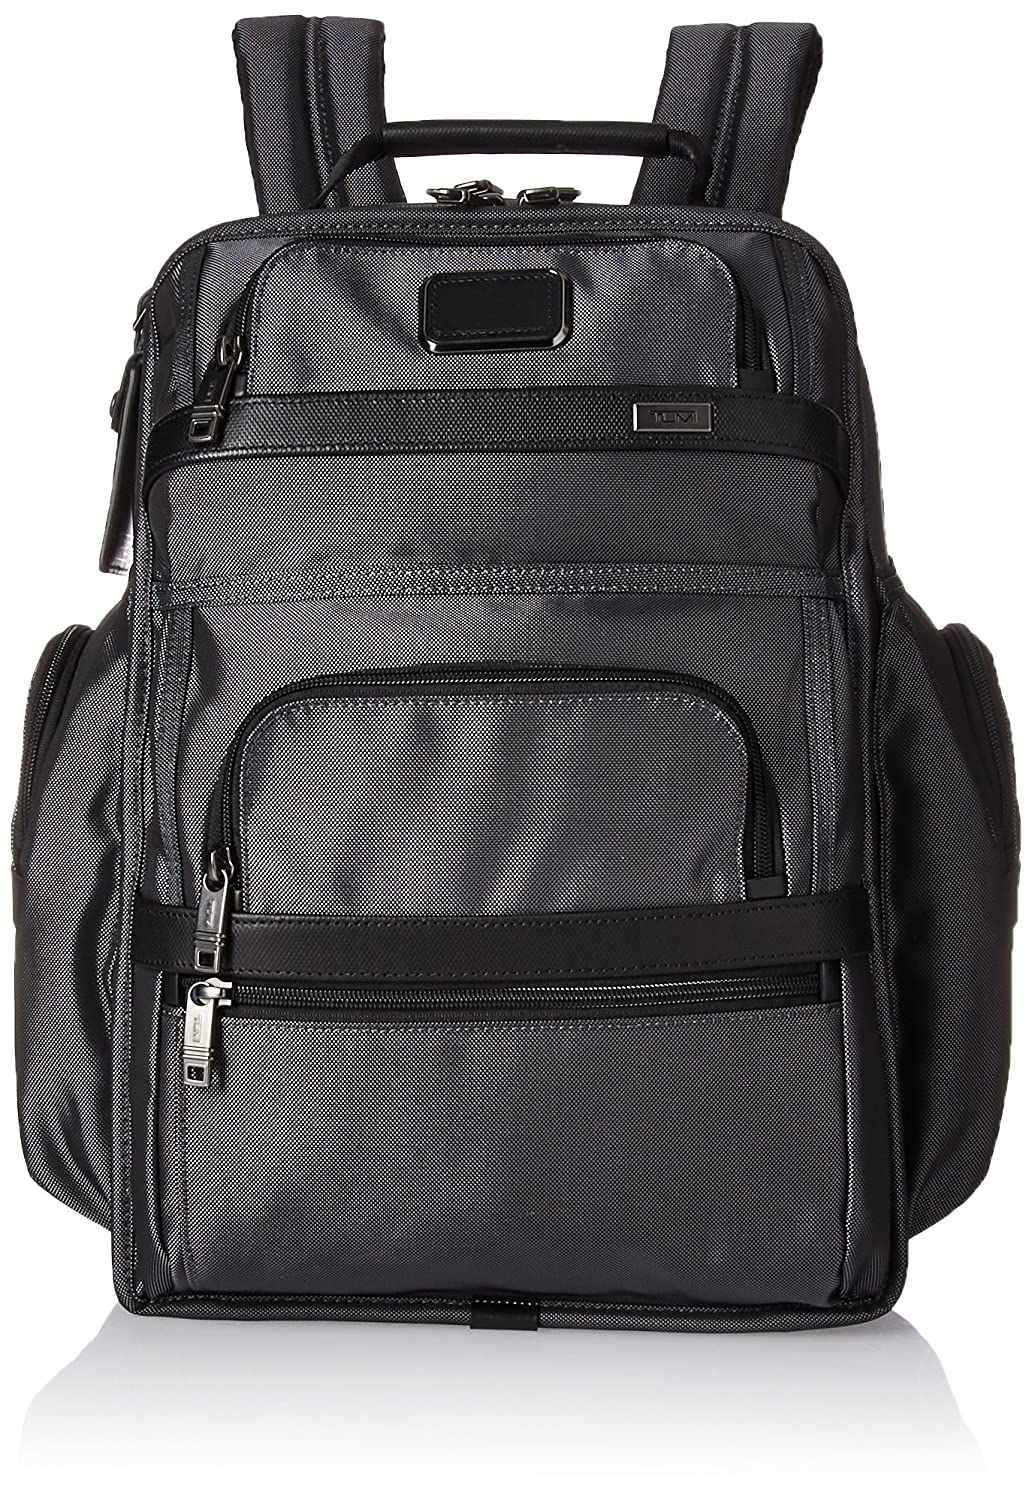 tumi backpack review